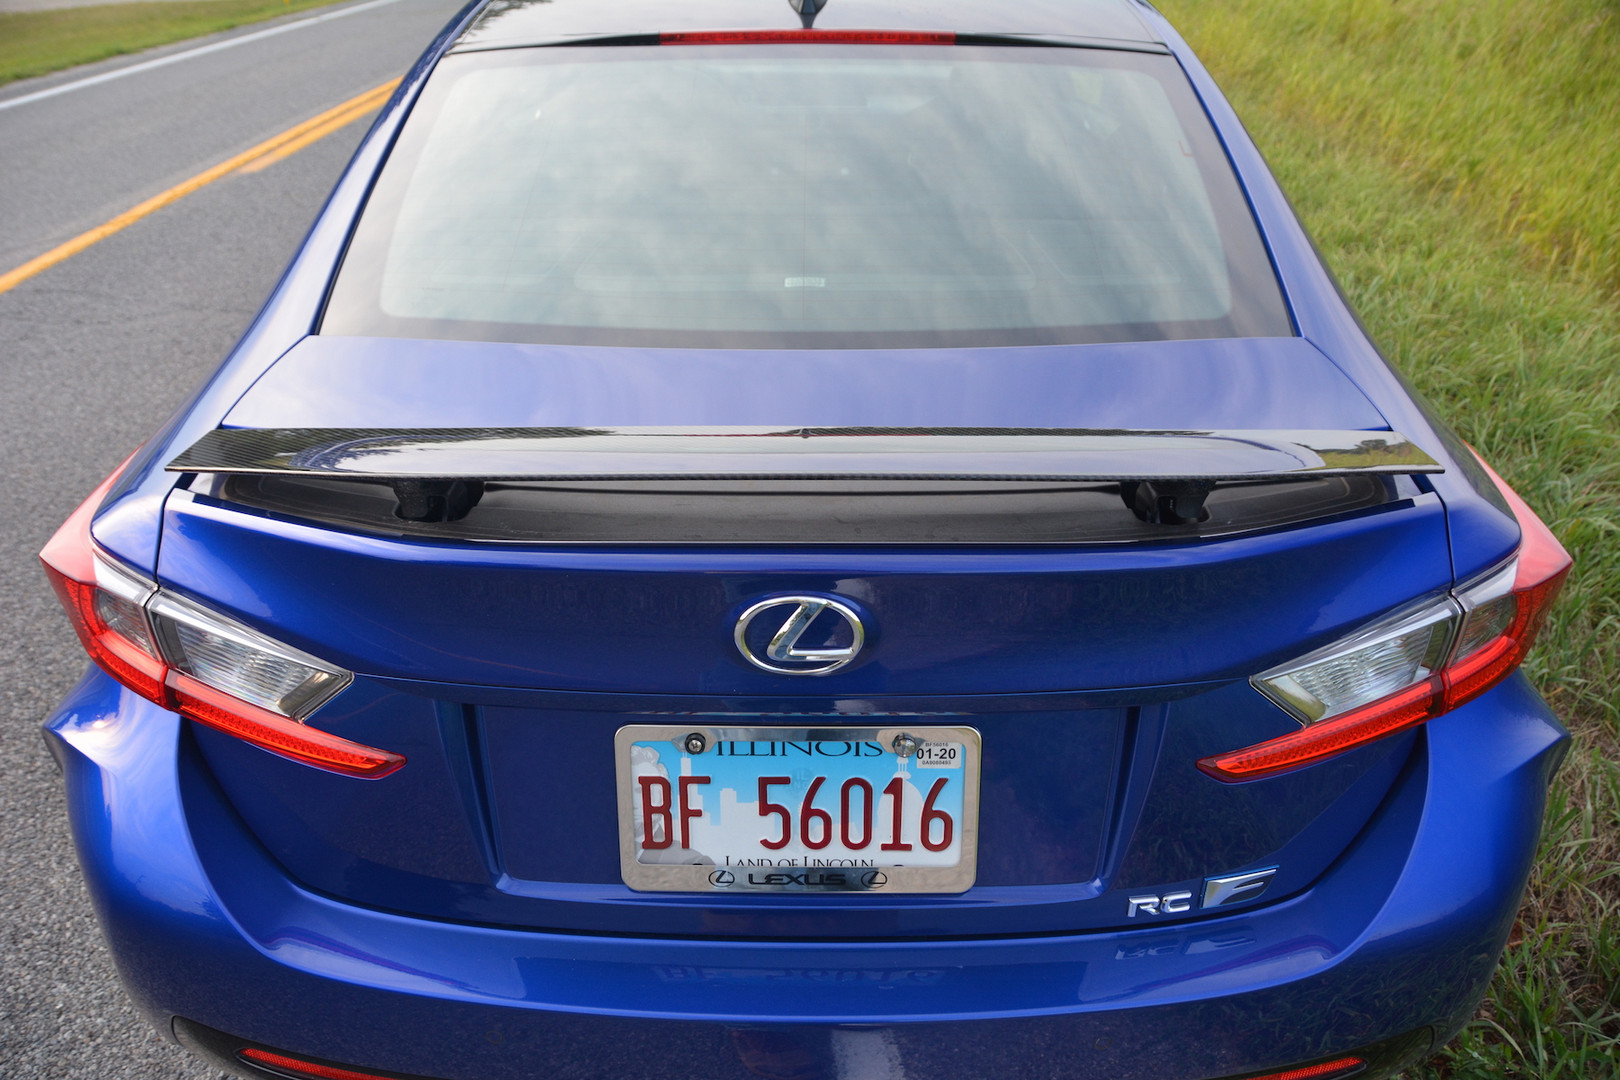 2019 Lexus RC F Rear Lights